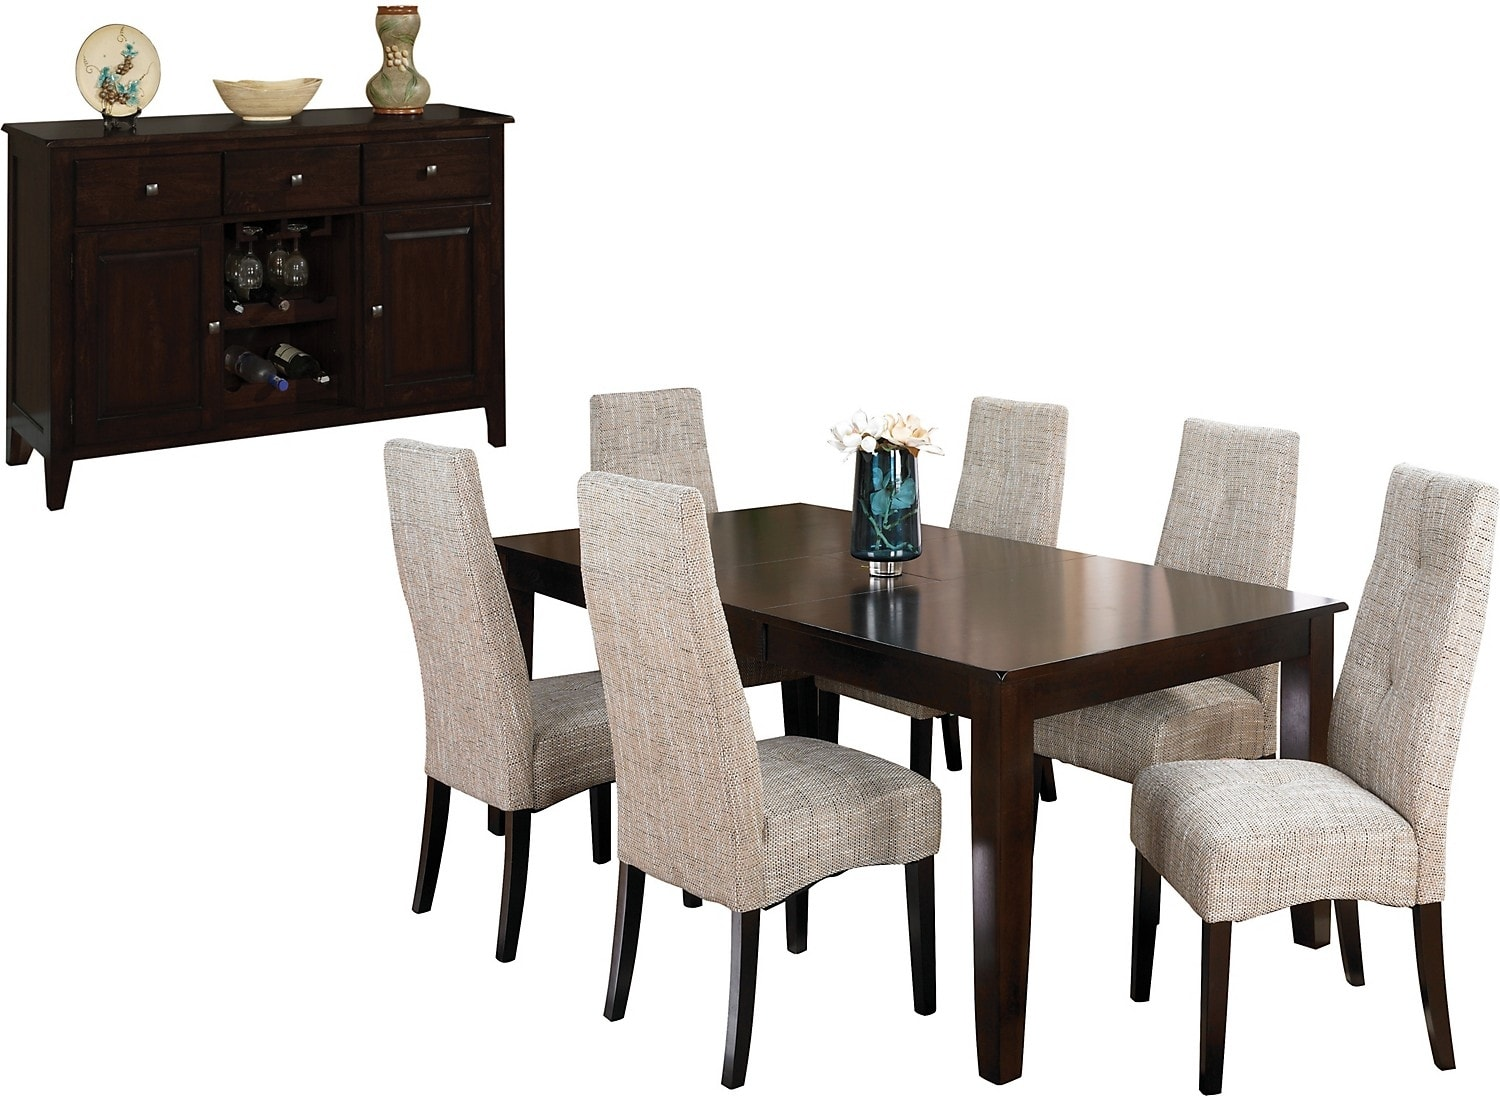 Dining Room Furniture - Dakota 8 Piece Dining Package w/ Linen Chairs